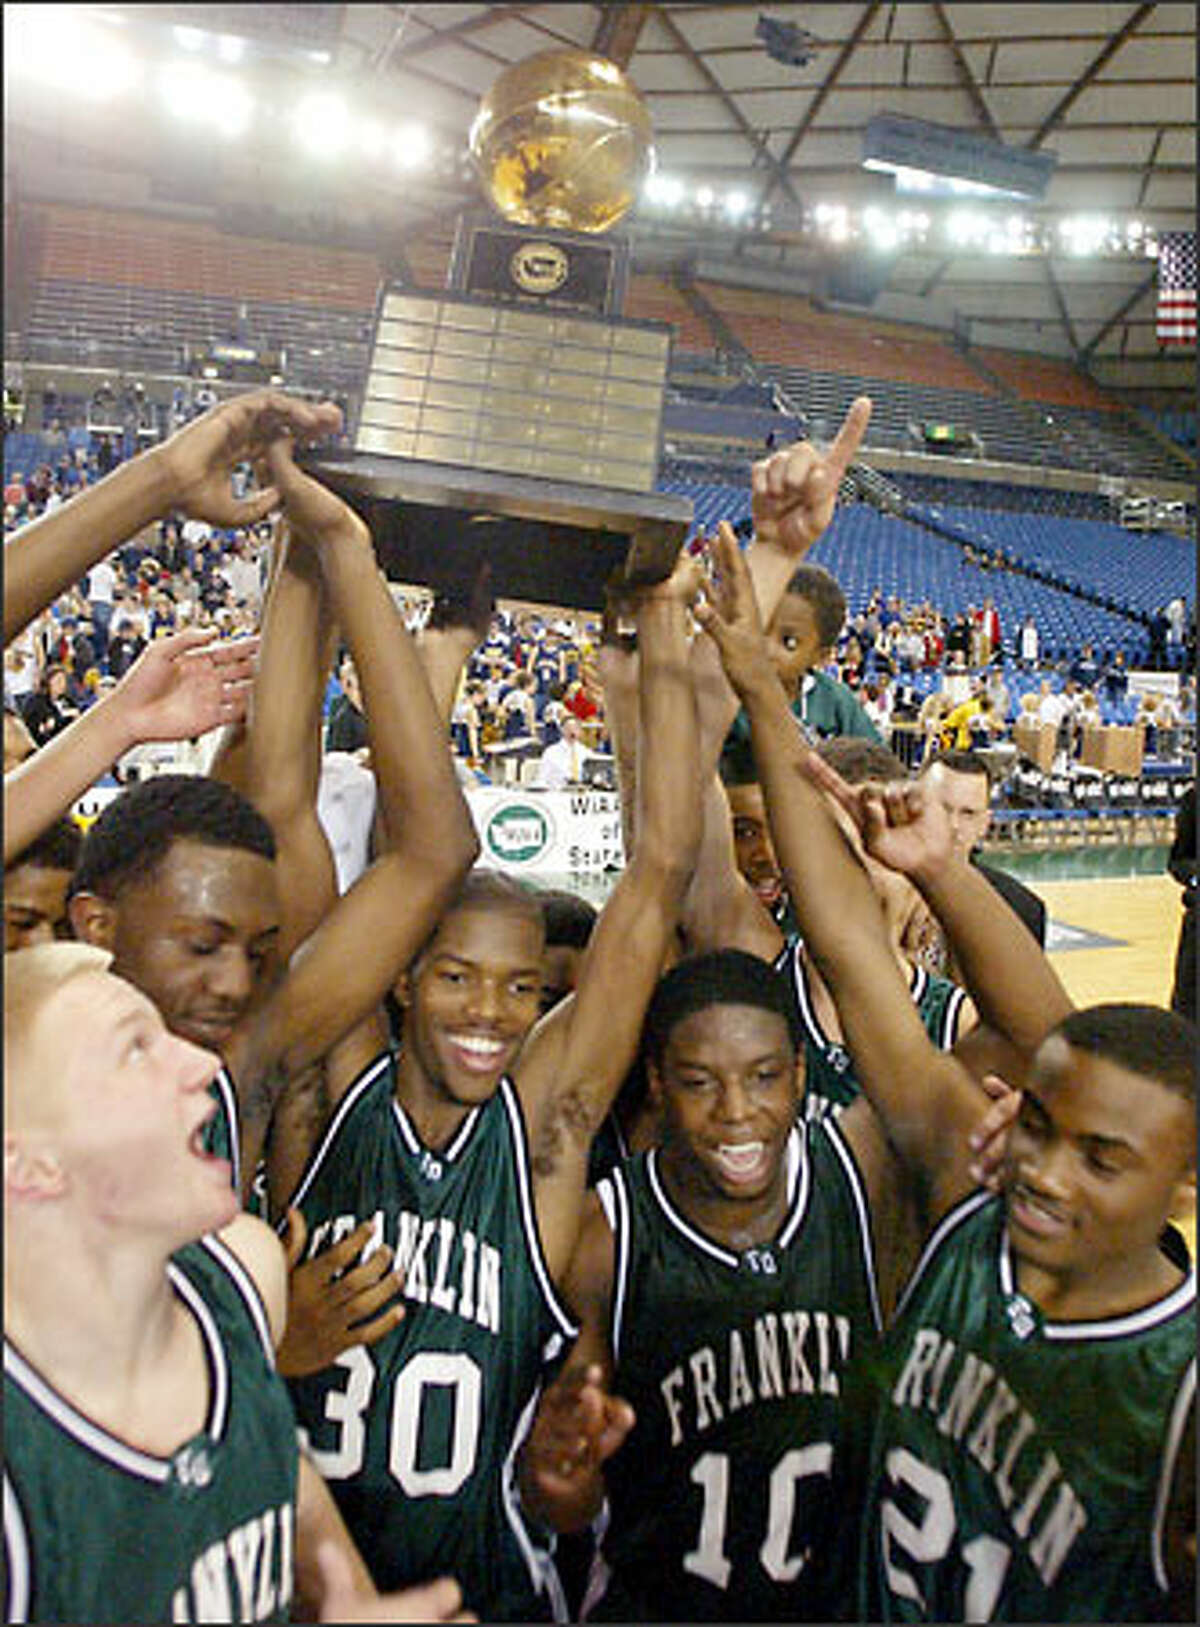 Franklin's Aaron Brooks (30), Senrique Tellez (10), Jordan Daisy (21) and others hold up the trophy after Franklin beat Mead 67-55 to win the boys Washington Class 4A basketball championship.